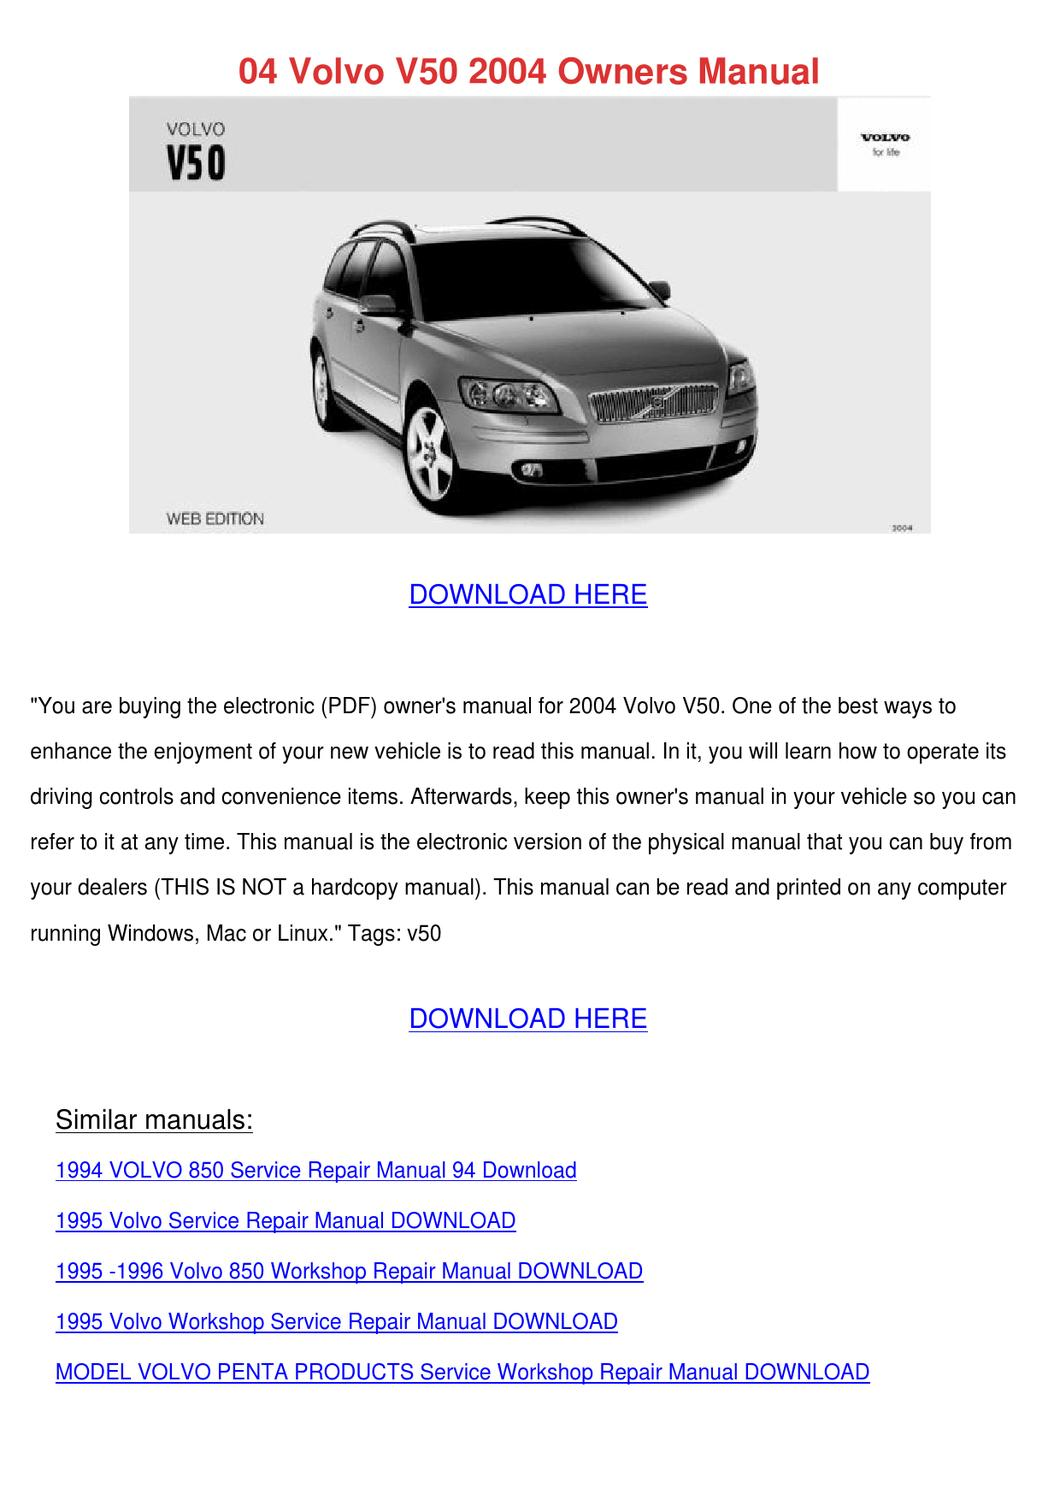 04 Volvo V50 2004 Owners Manual by EmilyDenning - issuu